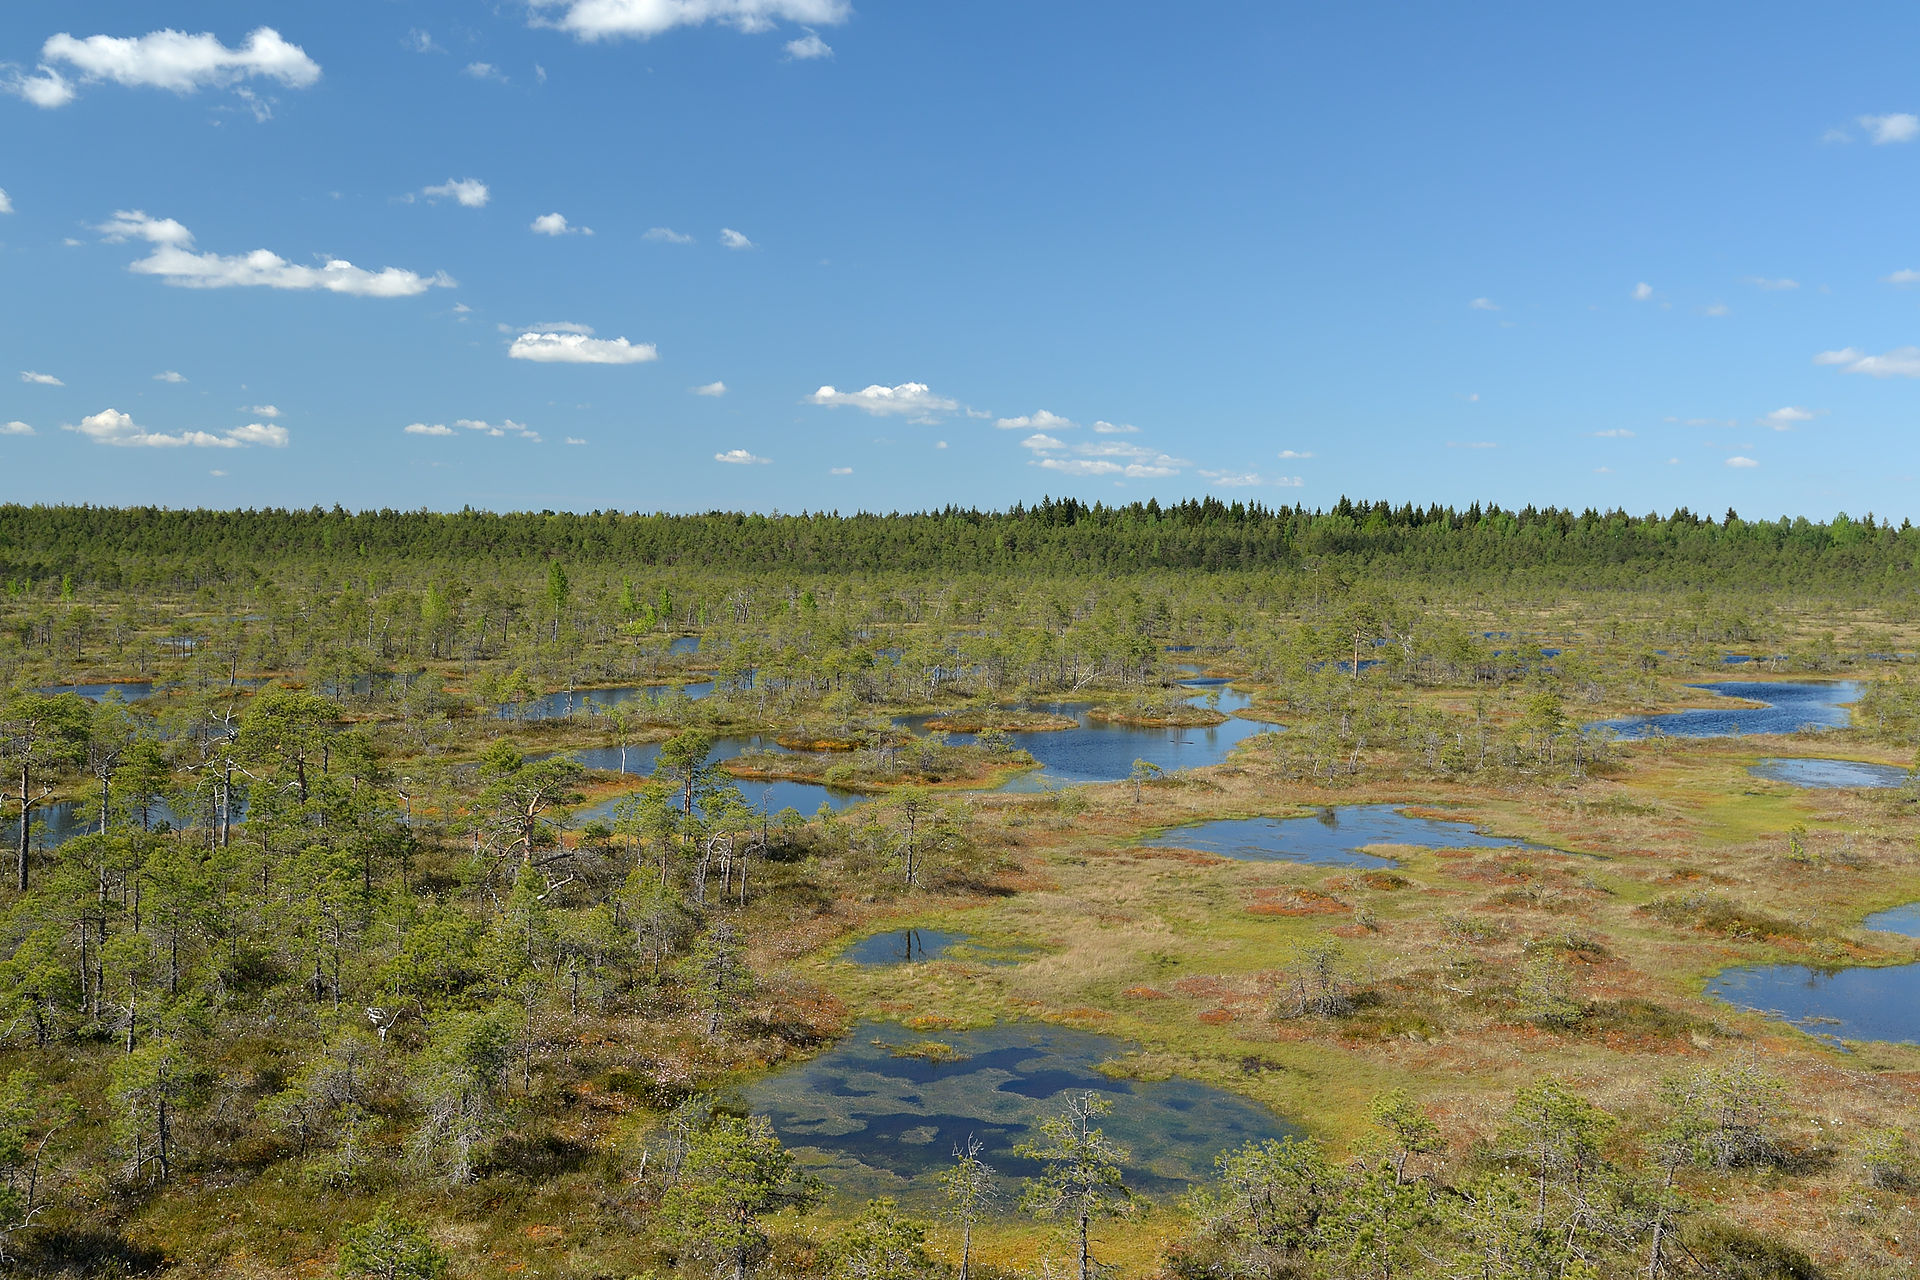 Much of the Netherlands may have looked like. Männikjärve bog in Estonia. Photo by Iifar - Own work, CC BY-SA 3.0,  https://commons.wikimedia.org/w/index.php?curid=19971973